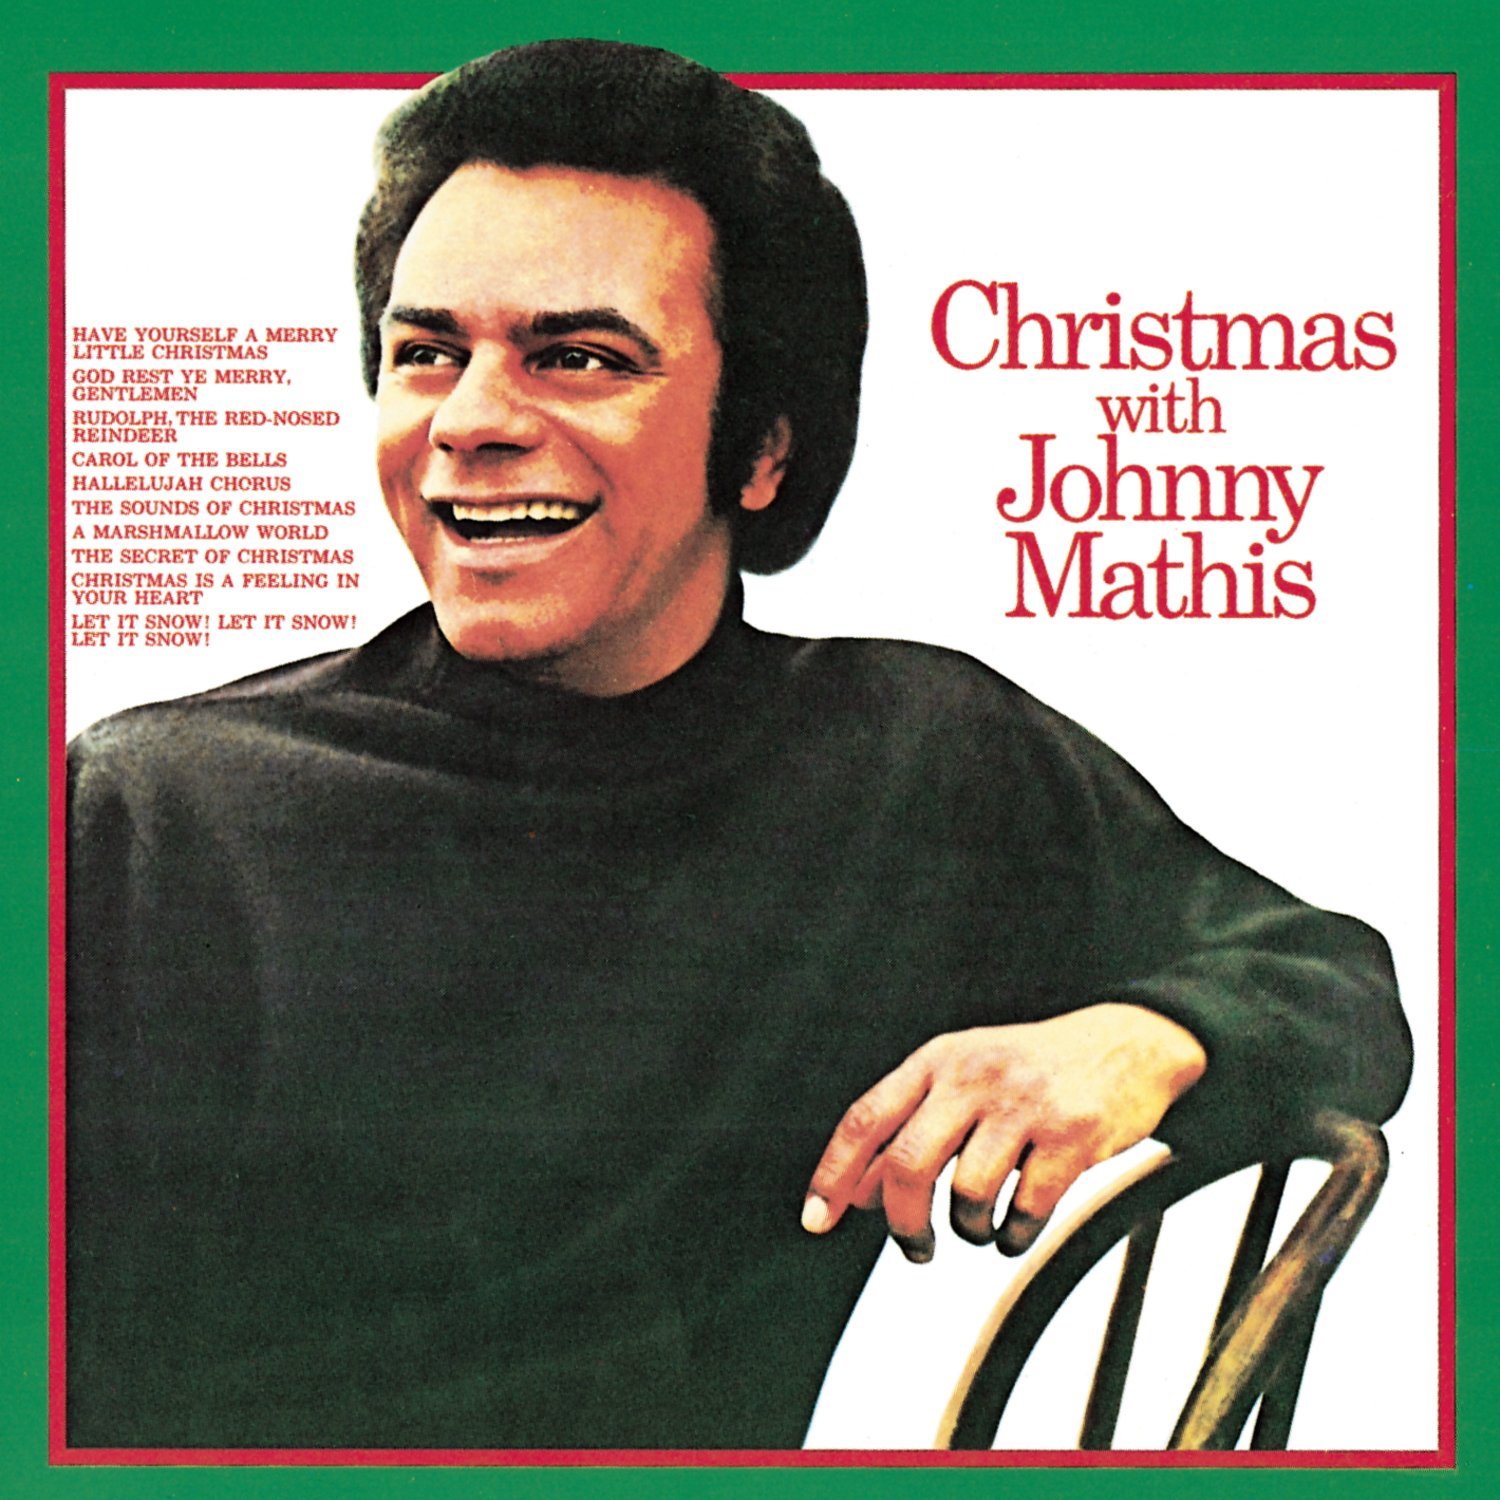 Johnny Mathis - Christmas with Johnny Mathis - Amazon.com Music